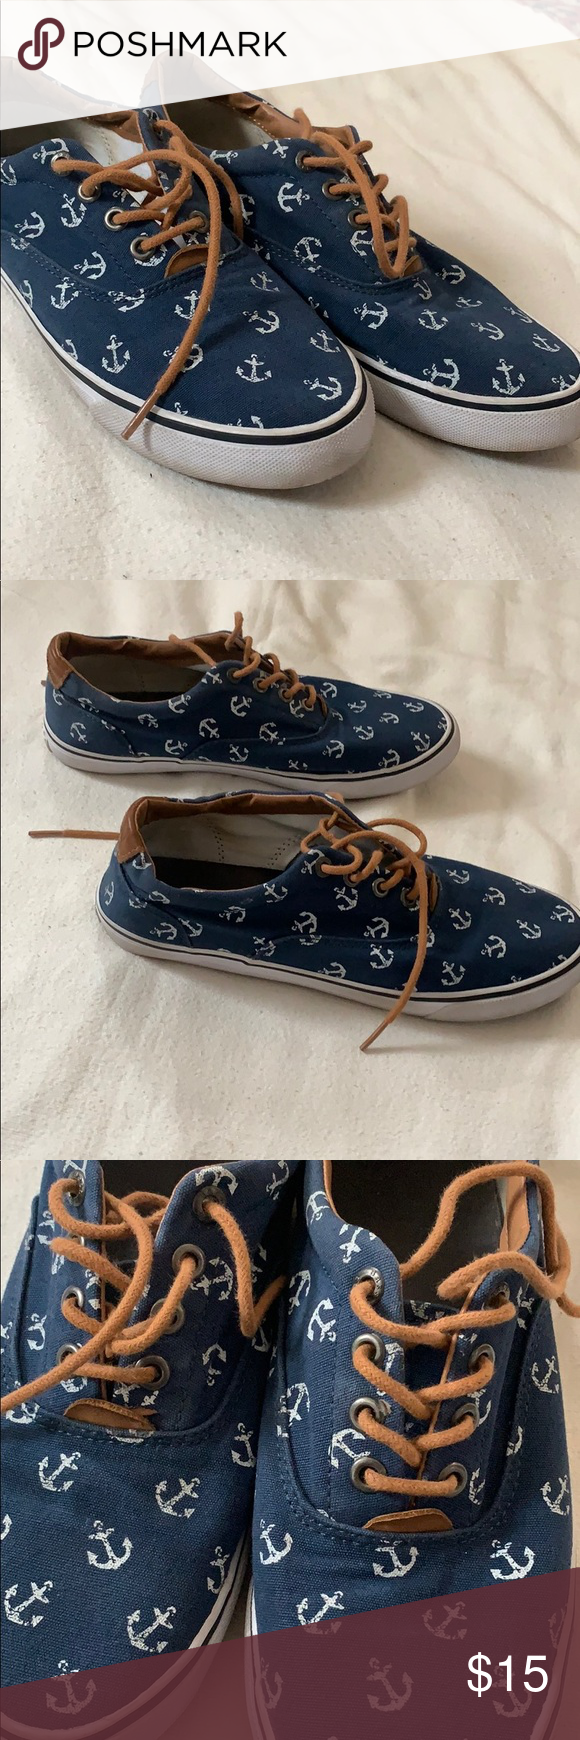 Bass nautical shoe These comfy shoes